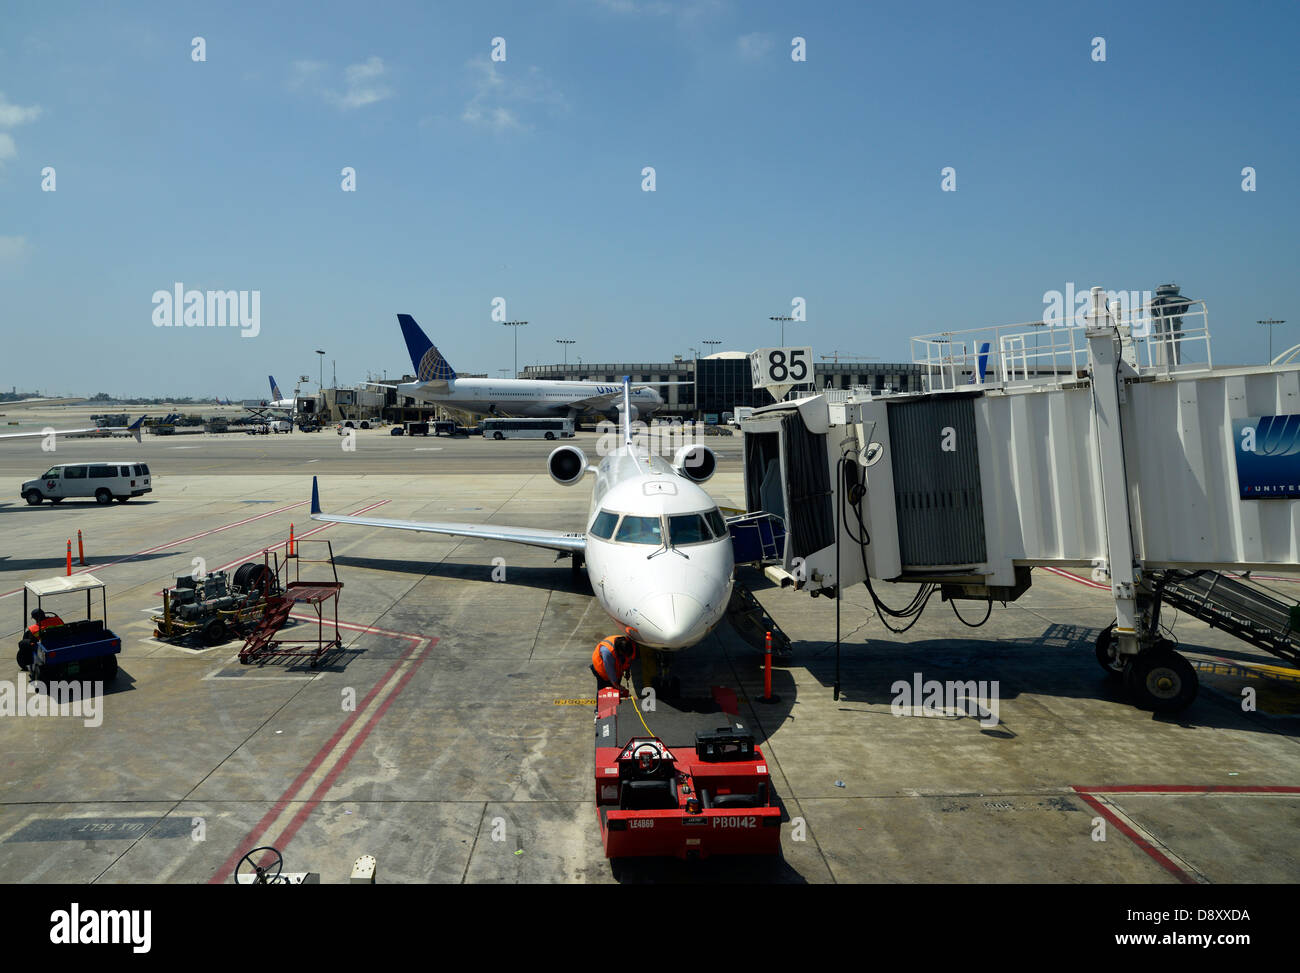 Dispatch AIRPORT LAX of Los Angeles Internationally airport, terminal 8, Los Angeles, California, the United States - Stock Image